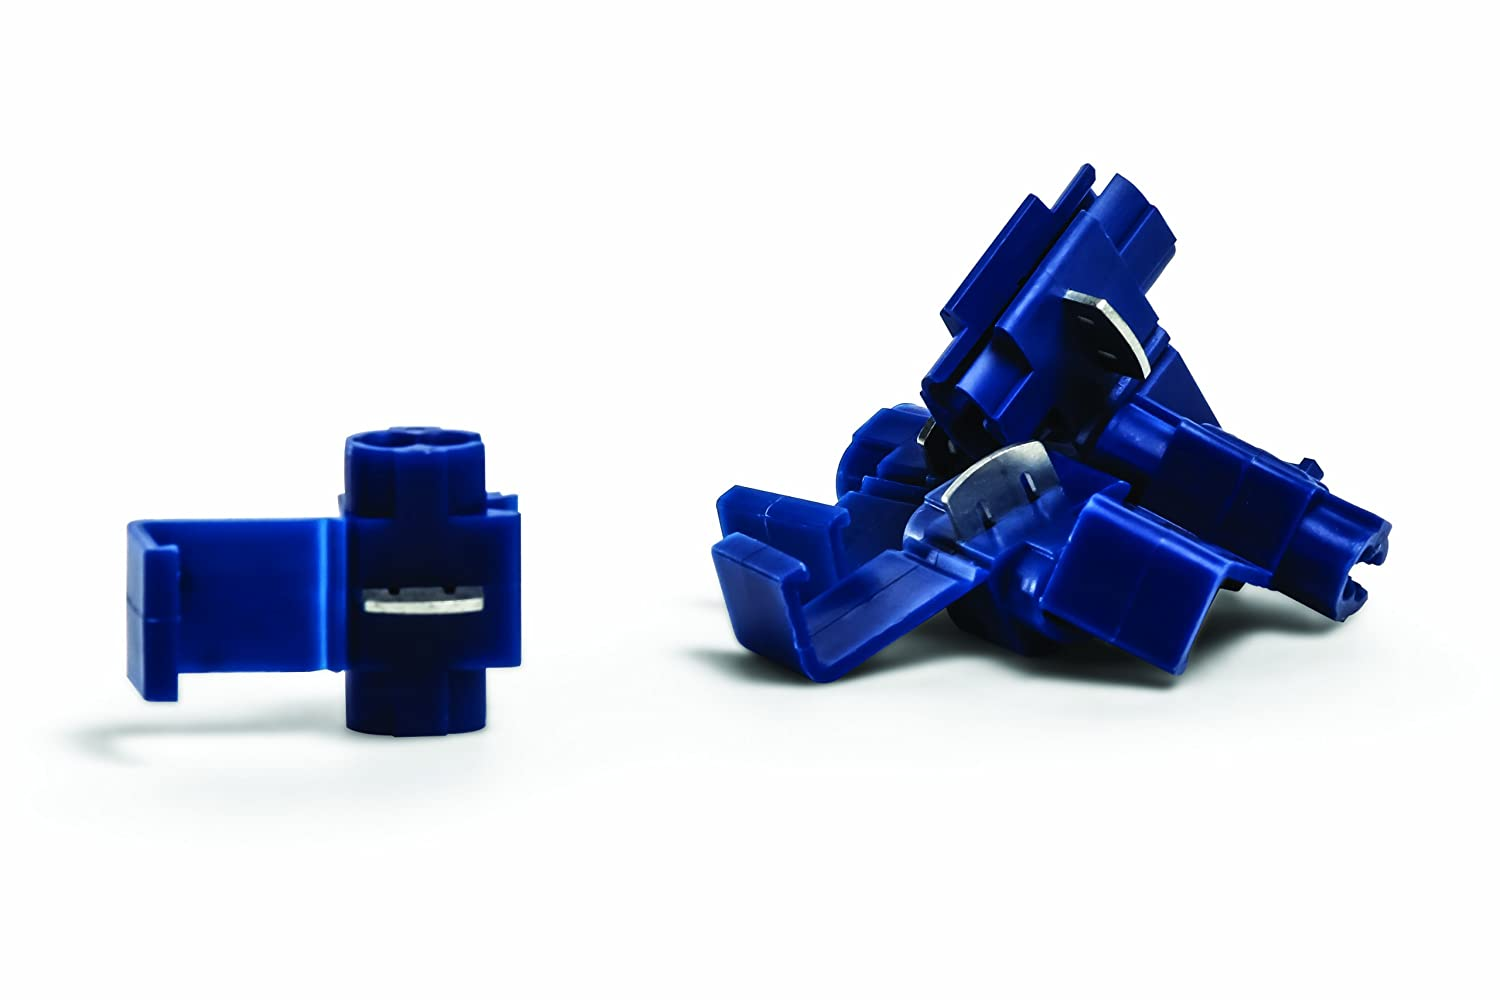 Camco 63801 Blue 18-14 AWG Self-Tapping Connector Pack of 5